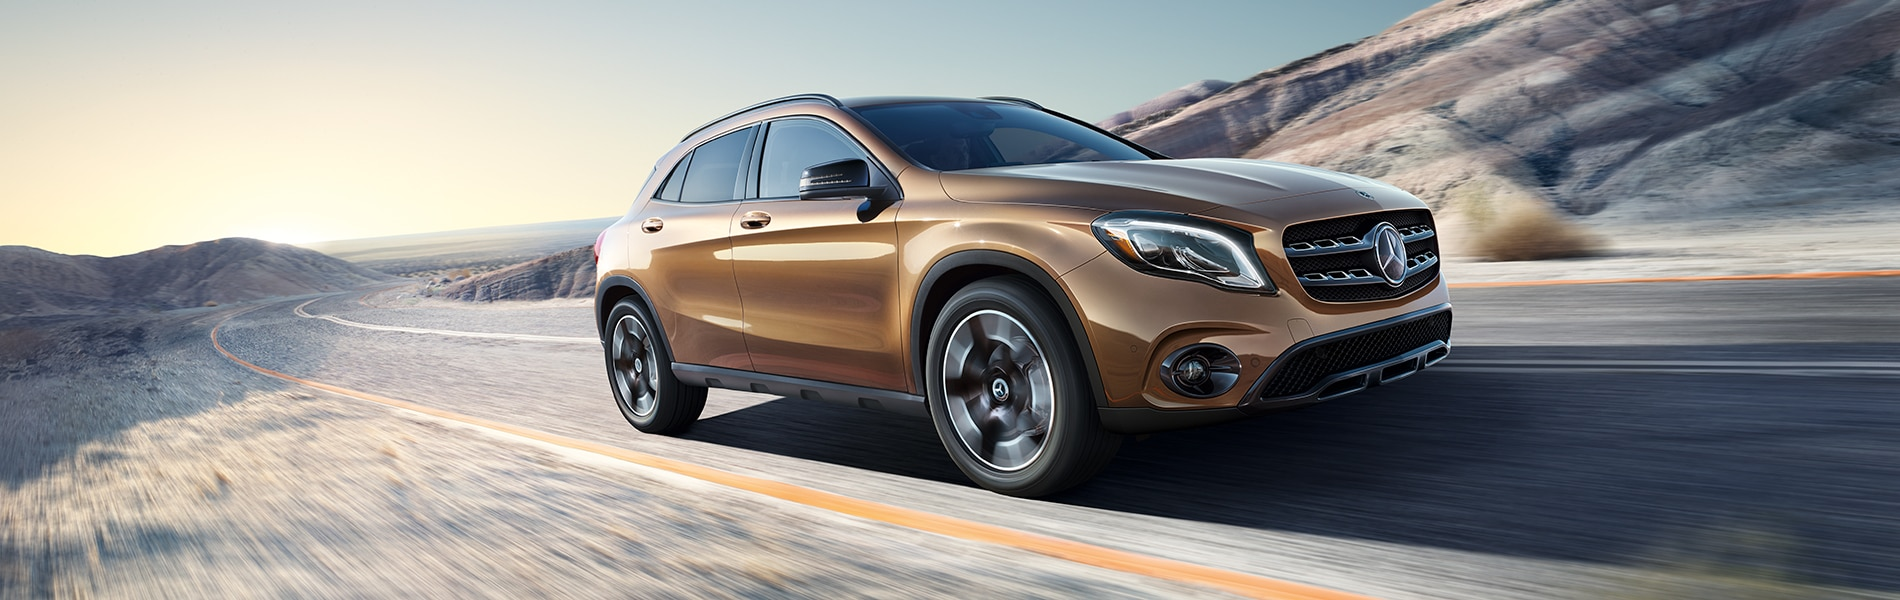 Mercedes Benz GLA Exterior Vehicle Features